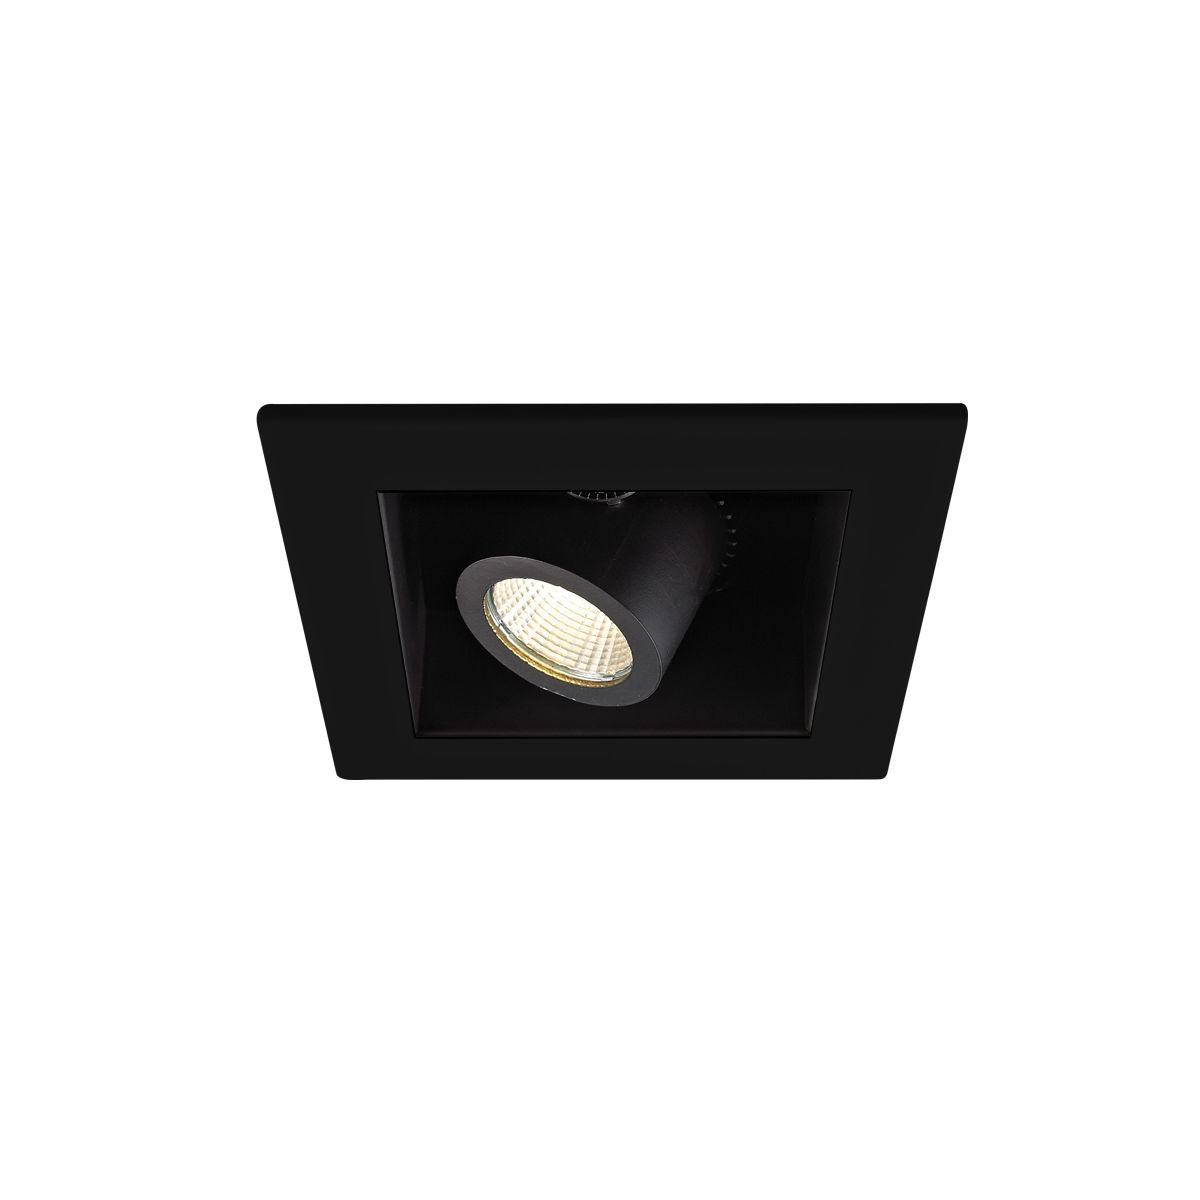 G recessed accent downlight 4 led energy star 1 light wac g recessed accent downlight 4 led energy star 1 light wac lighting arubaitofo Image collections